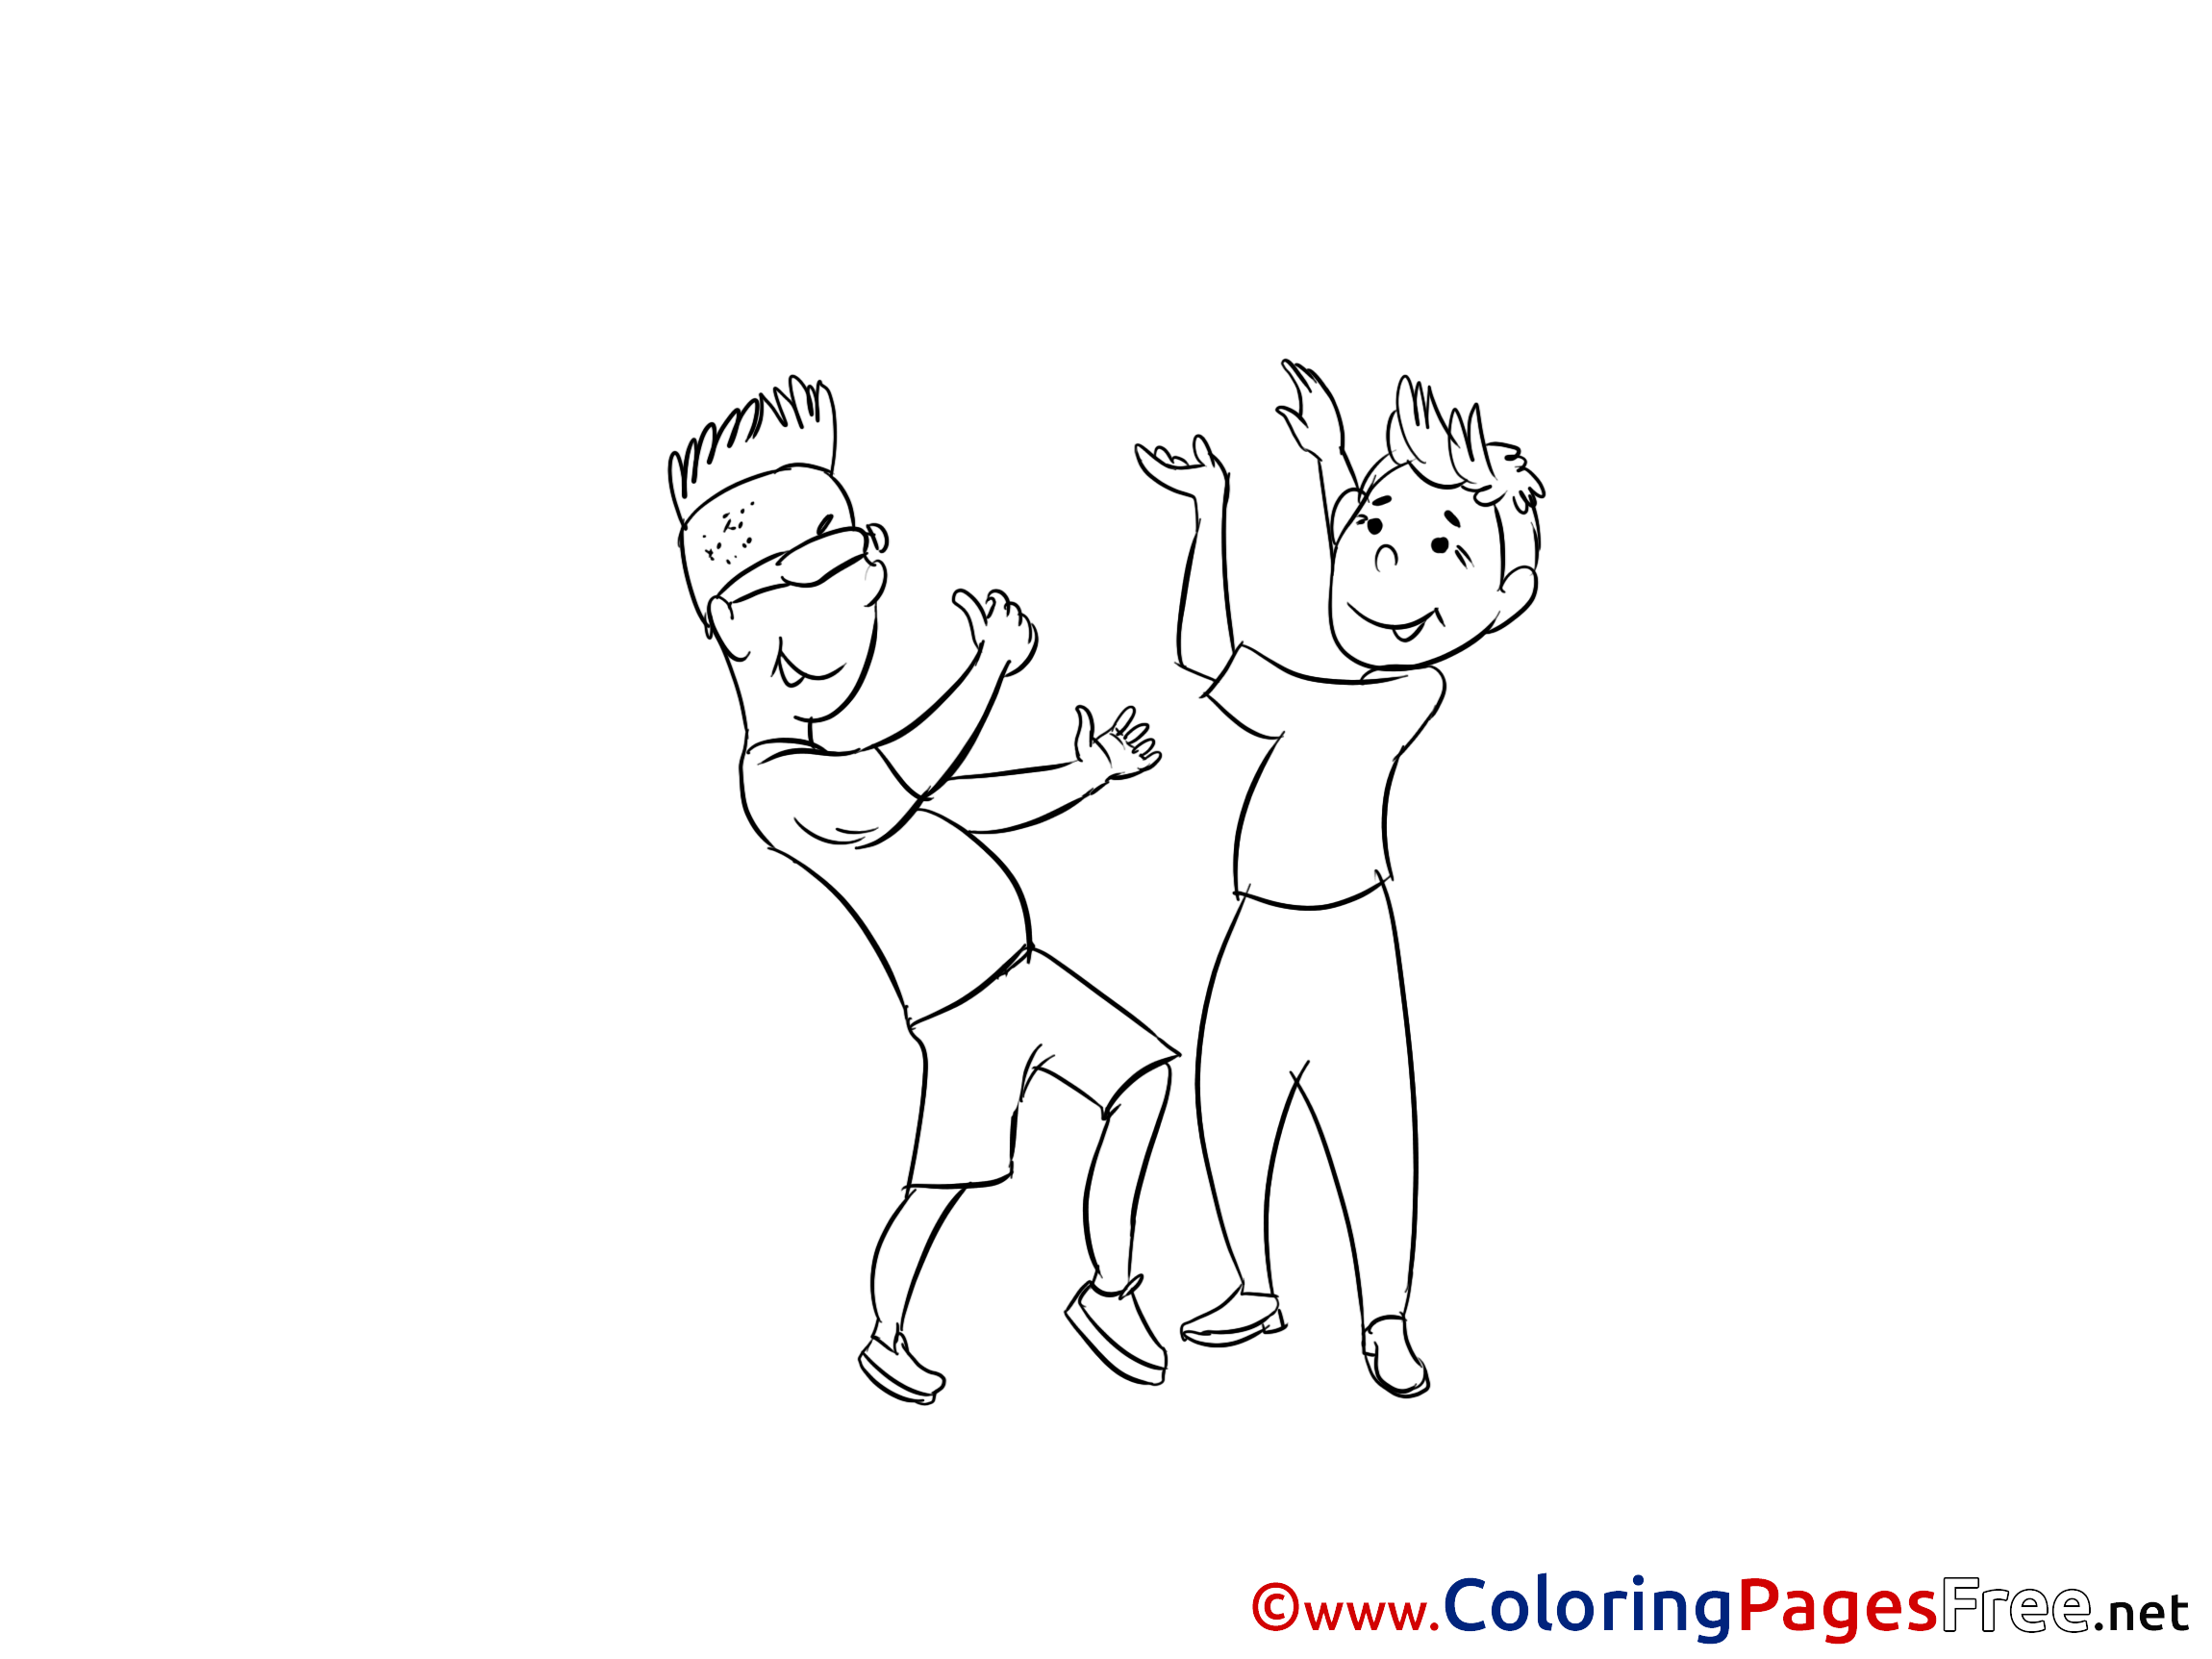 Boys Dancing for free Coloring Pages download